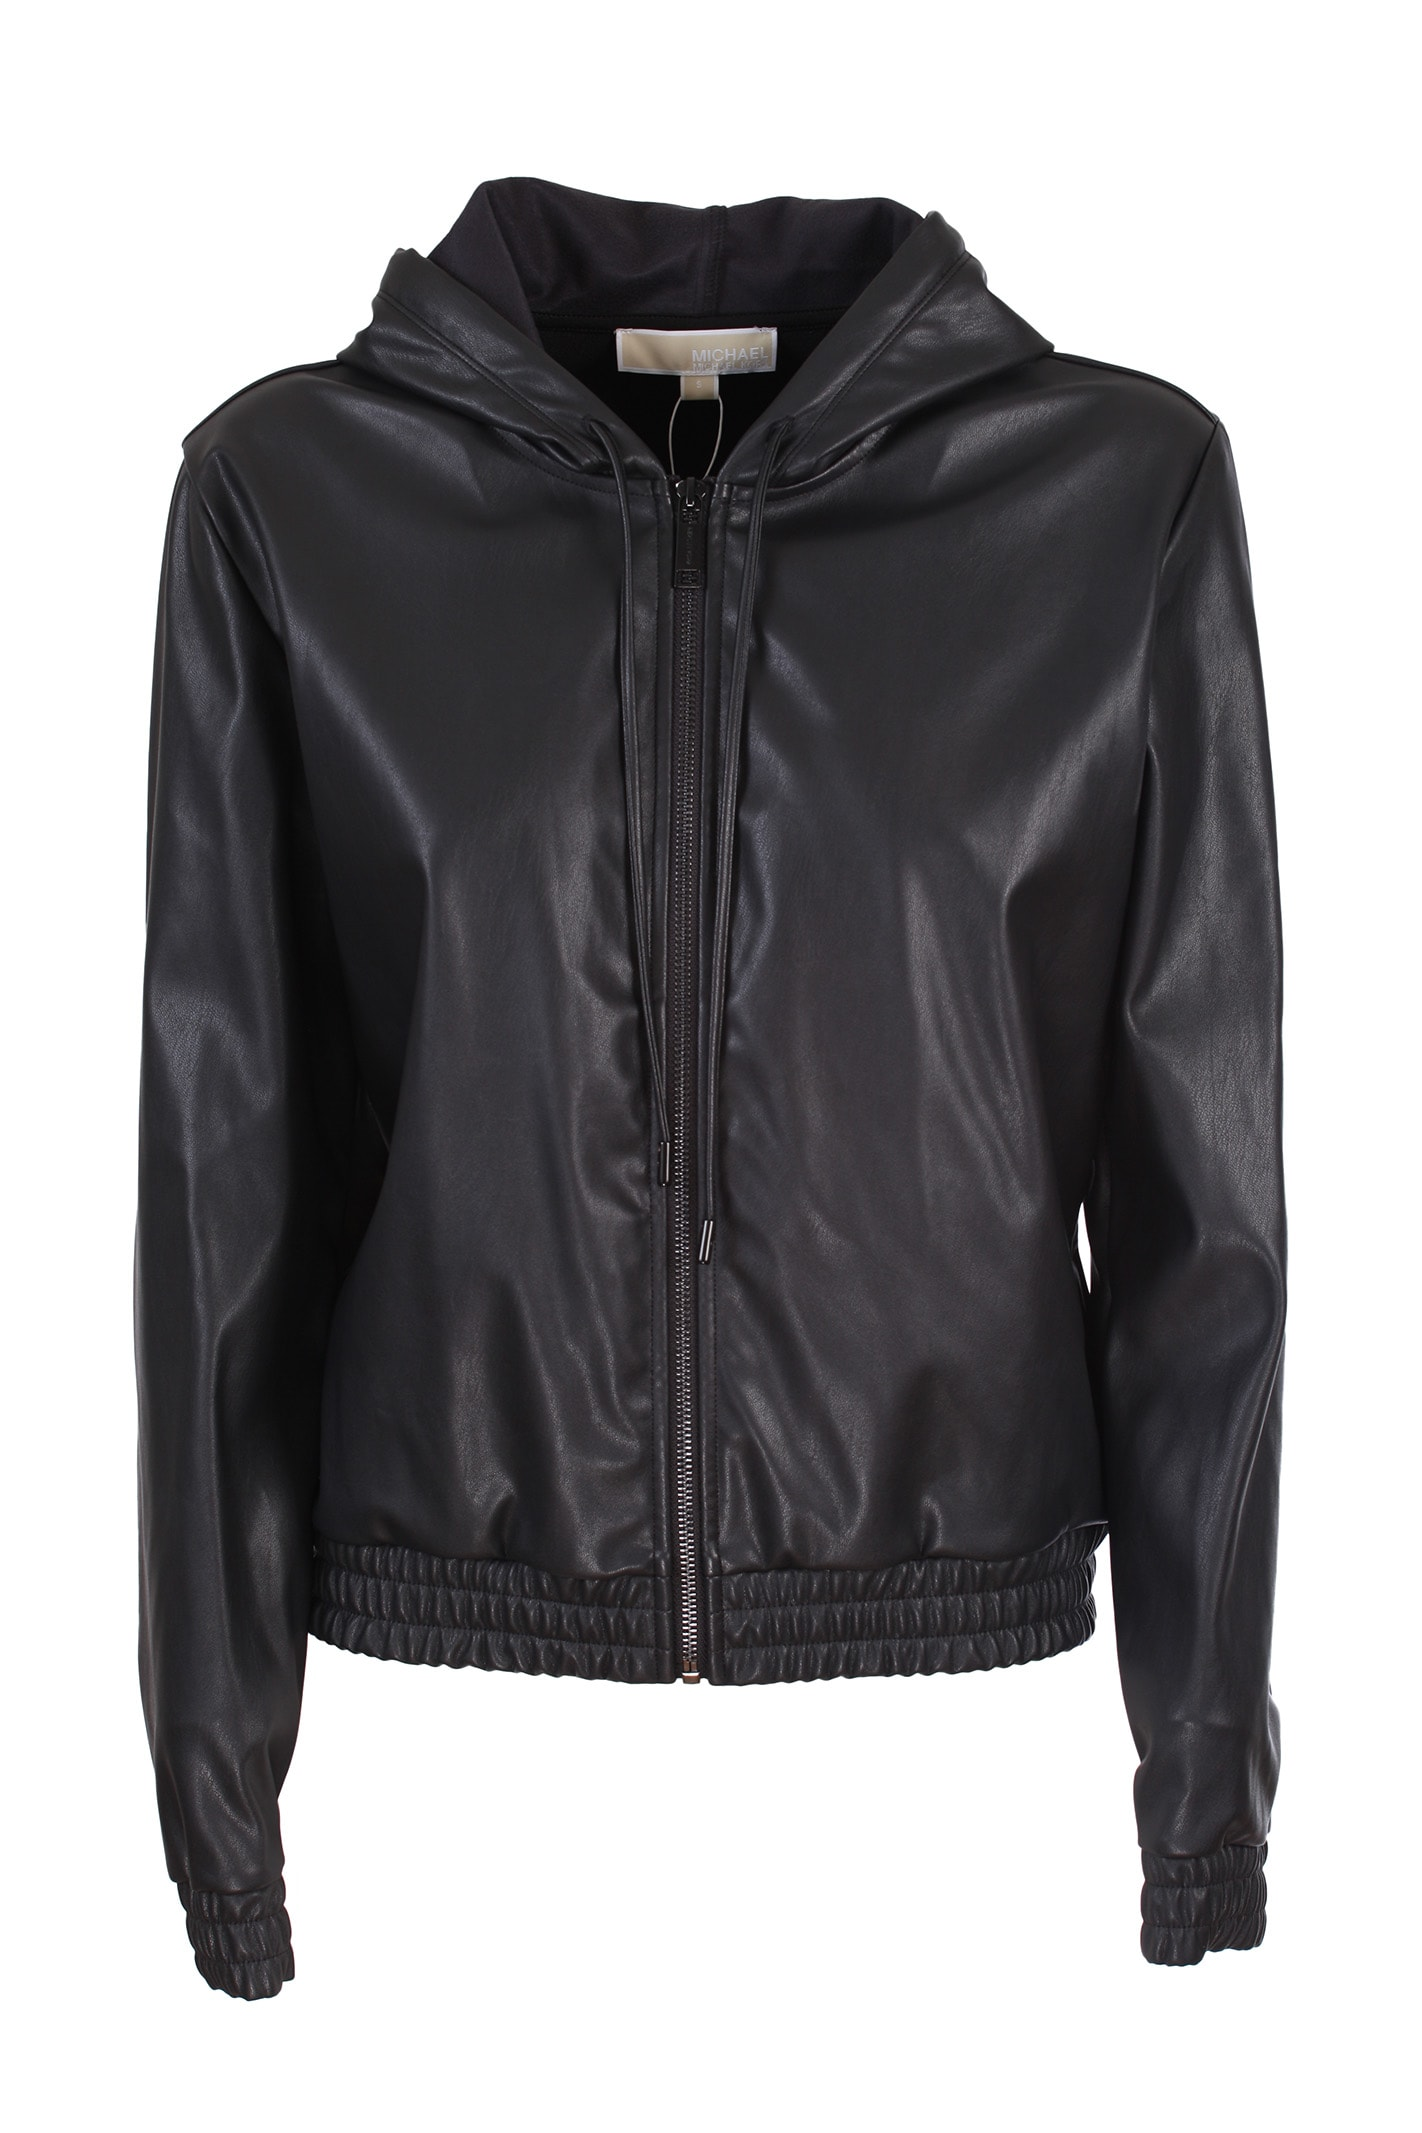 Michael Michael Kors leather look hooded sweatshirt